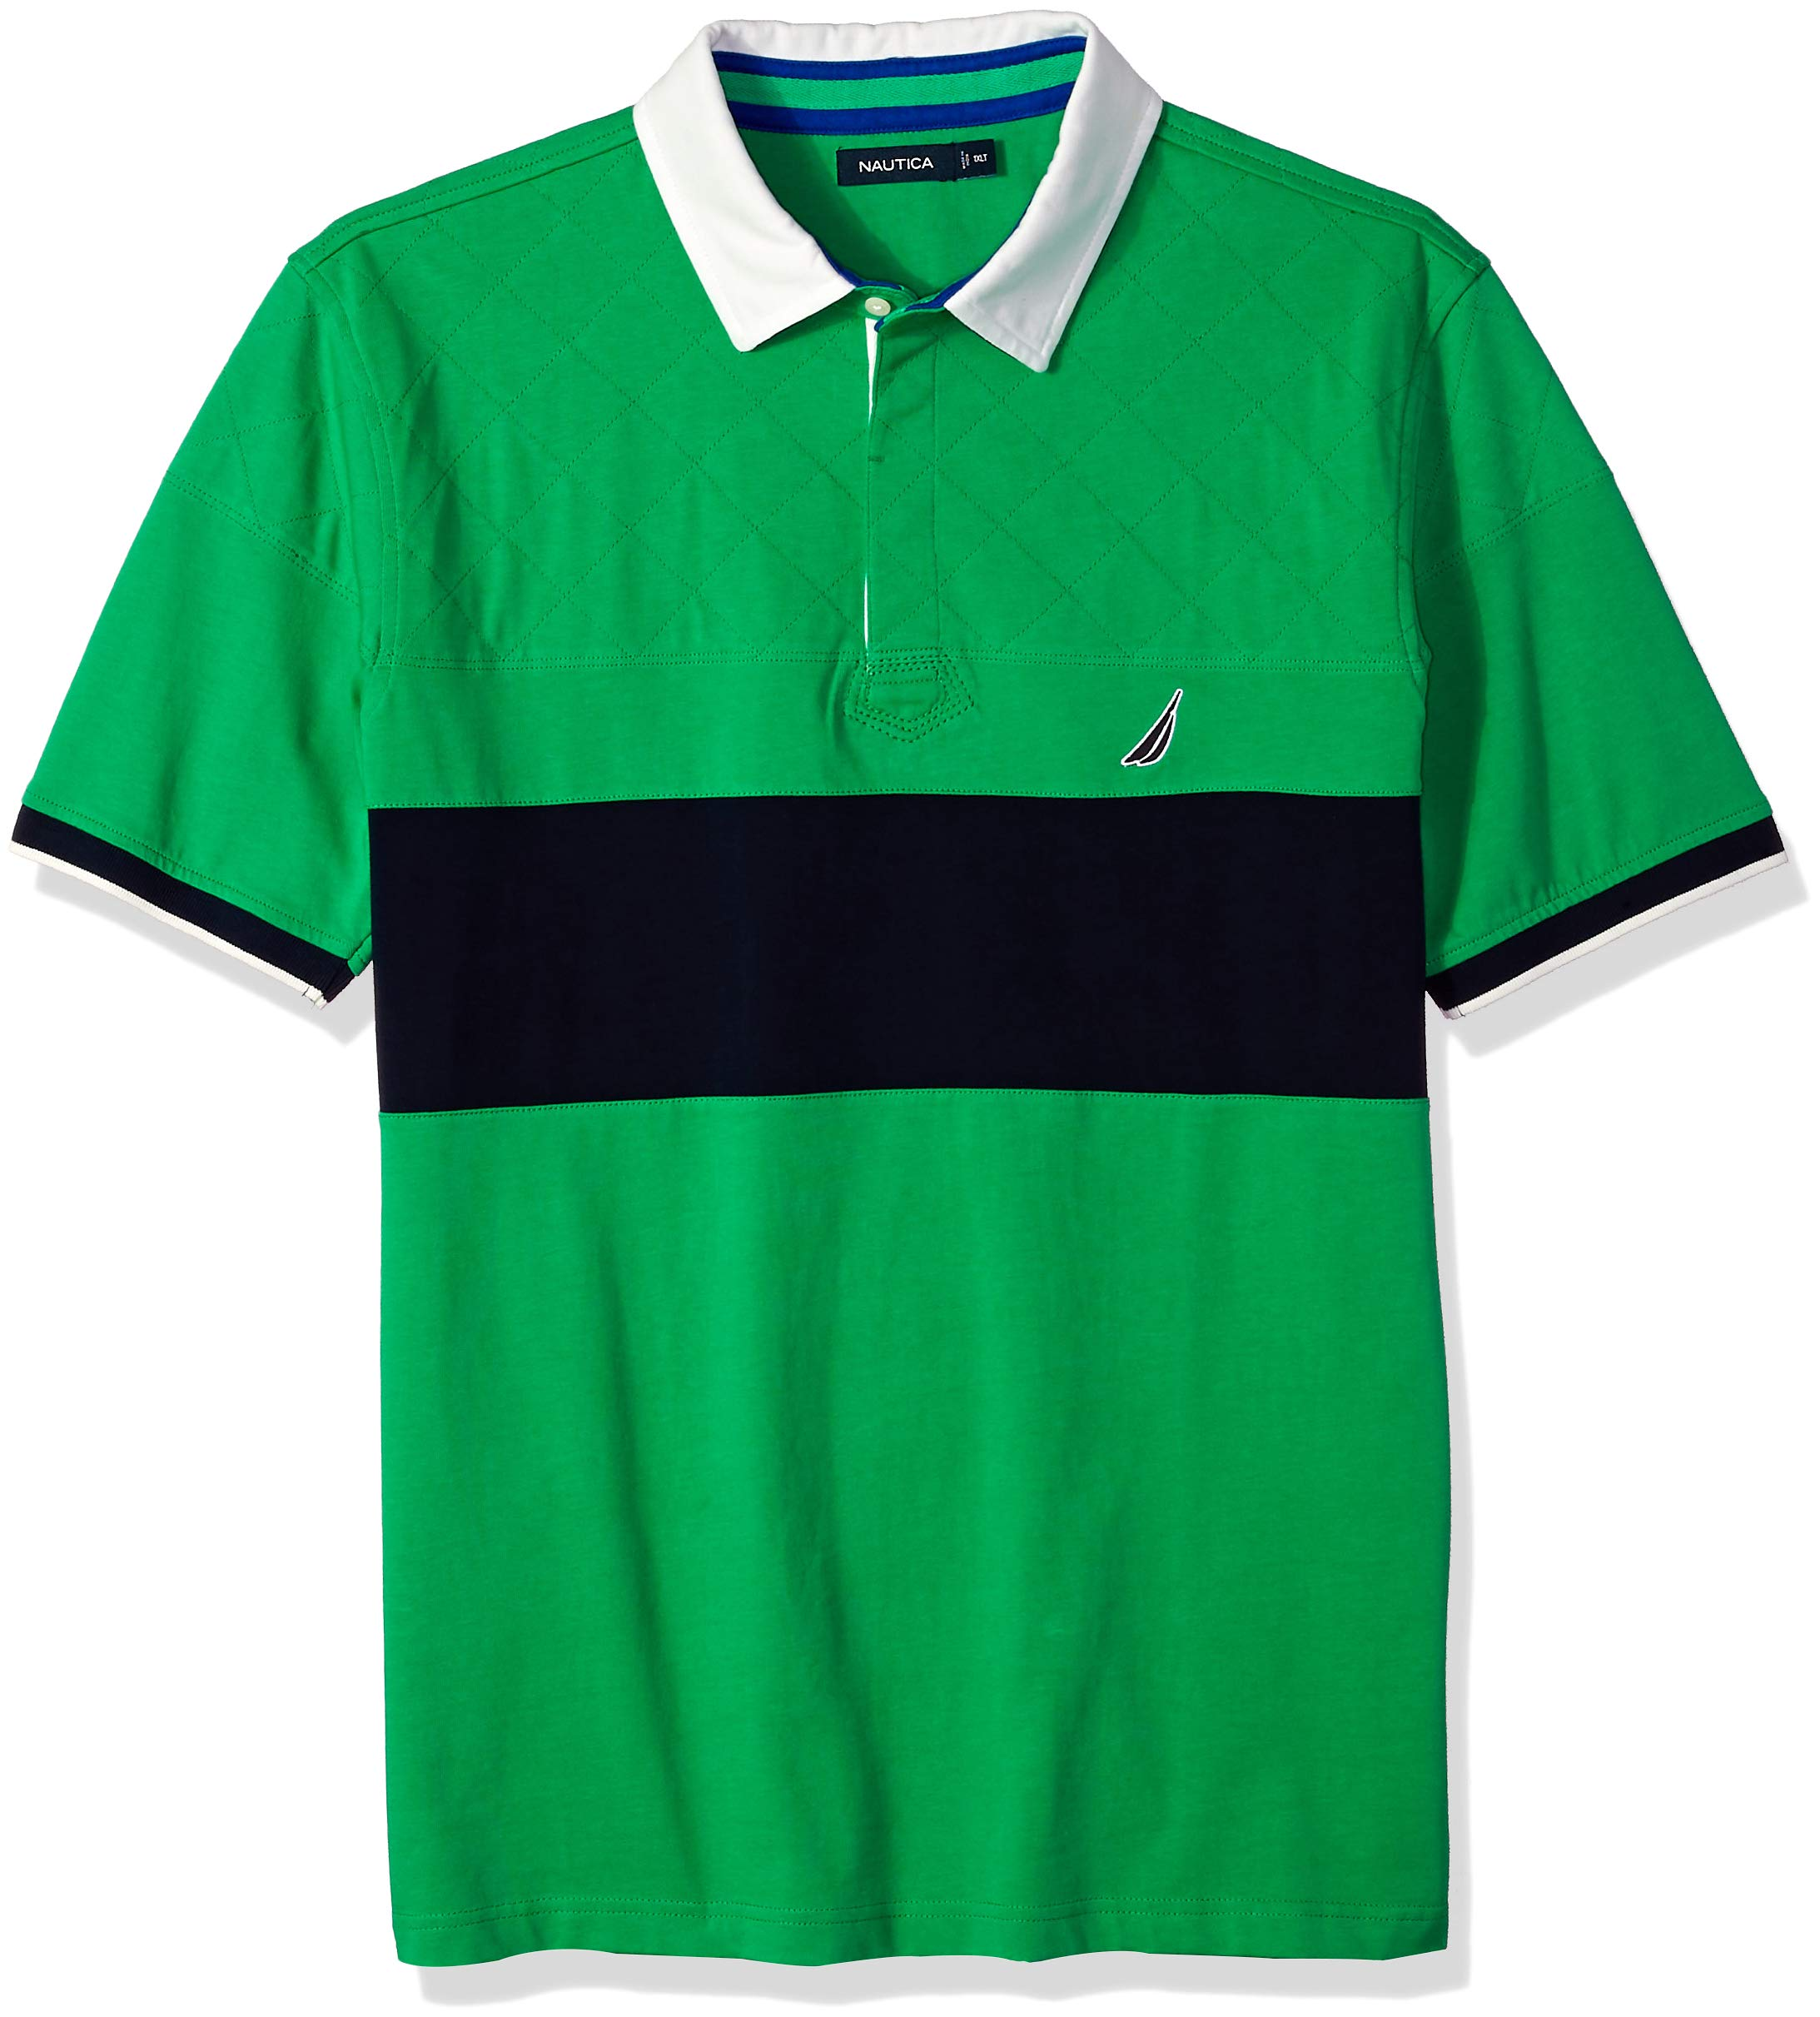 Nautica Men's Big and Tall Short Sleeve Quilted Classic Fit Polo Shirt, Bright Green 2XLT